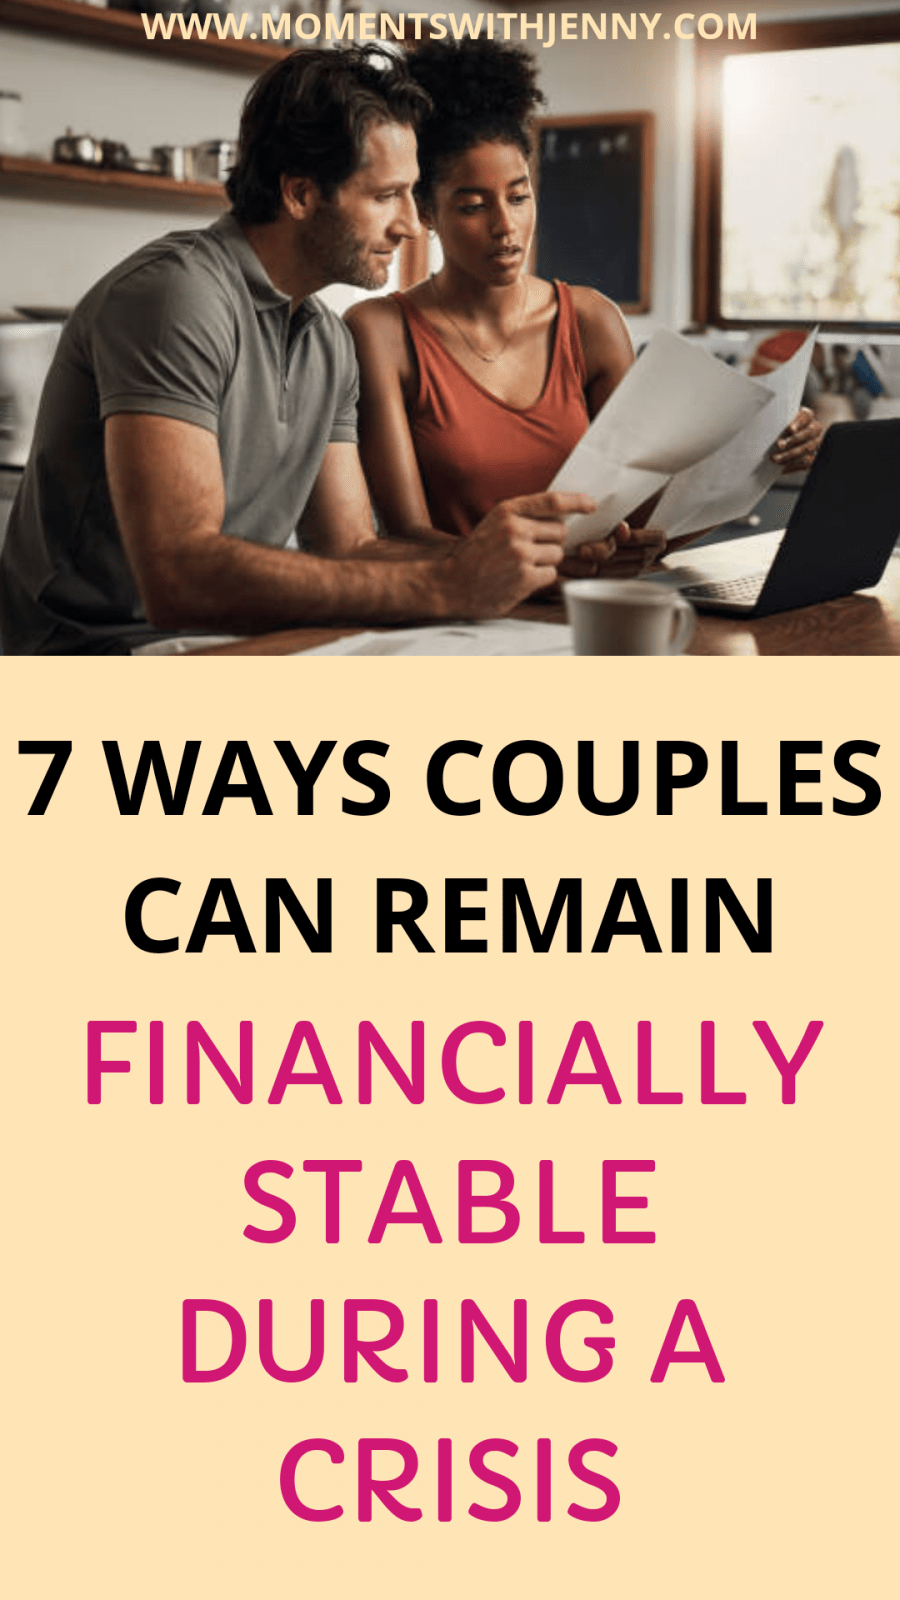 7 ways couples can remain financially stable during a crisis